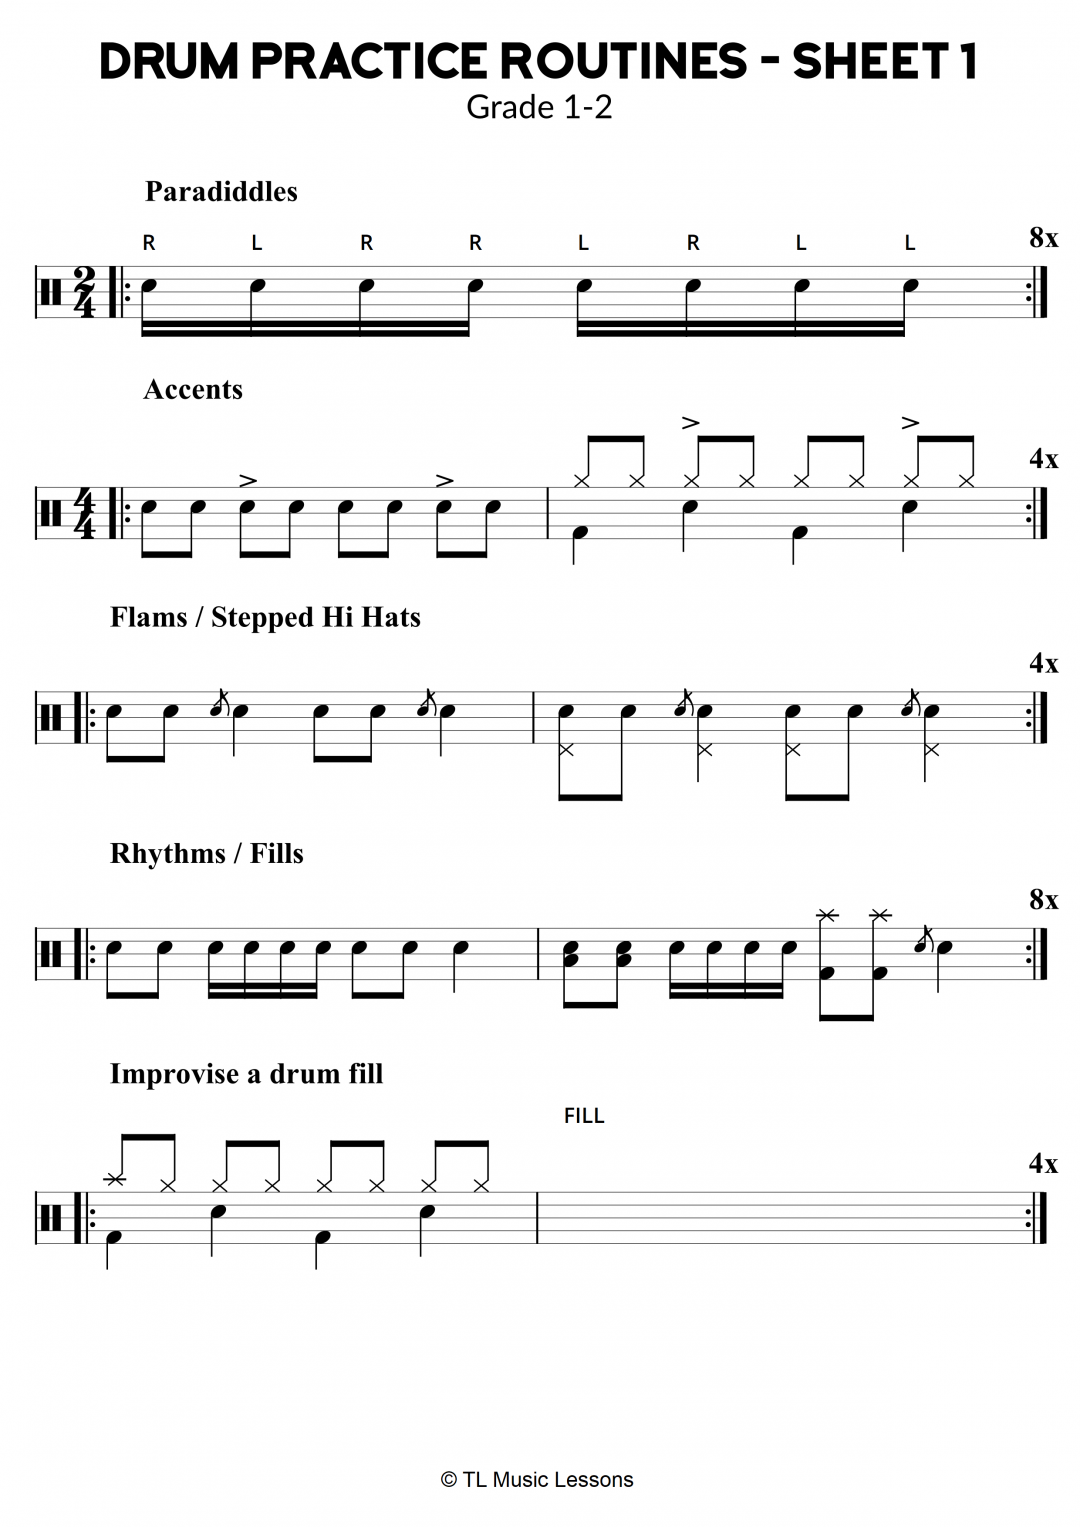 Drum Practice Routines – Sheet 1 – Grade 1-2